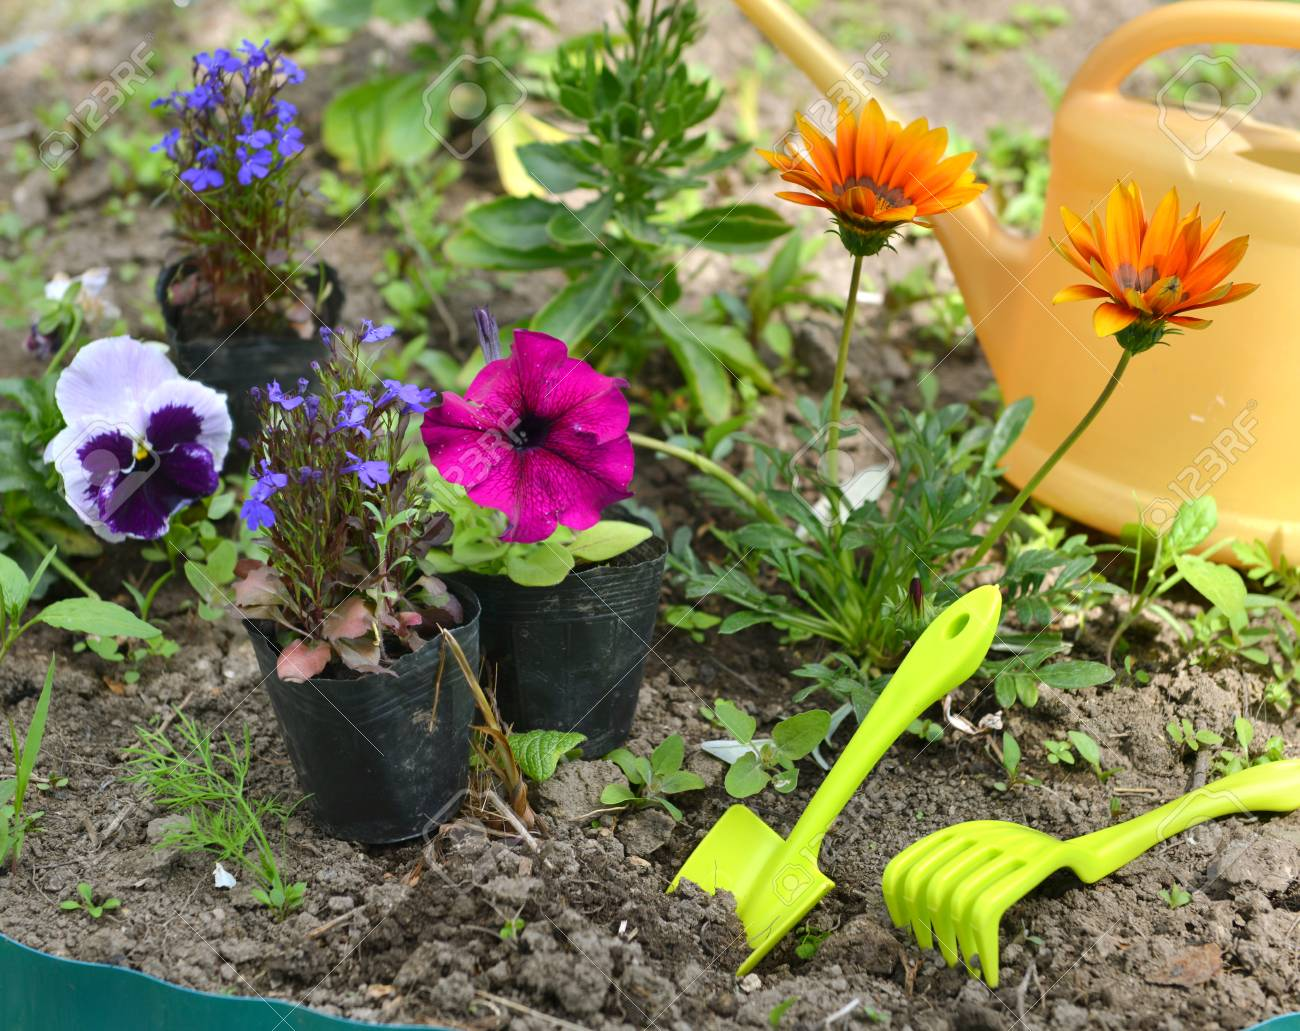 Garden Still Life With Petunias Pansy Flowers And Tools In Flower